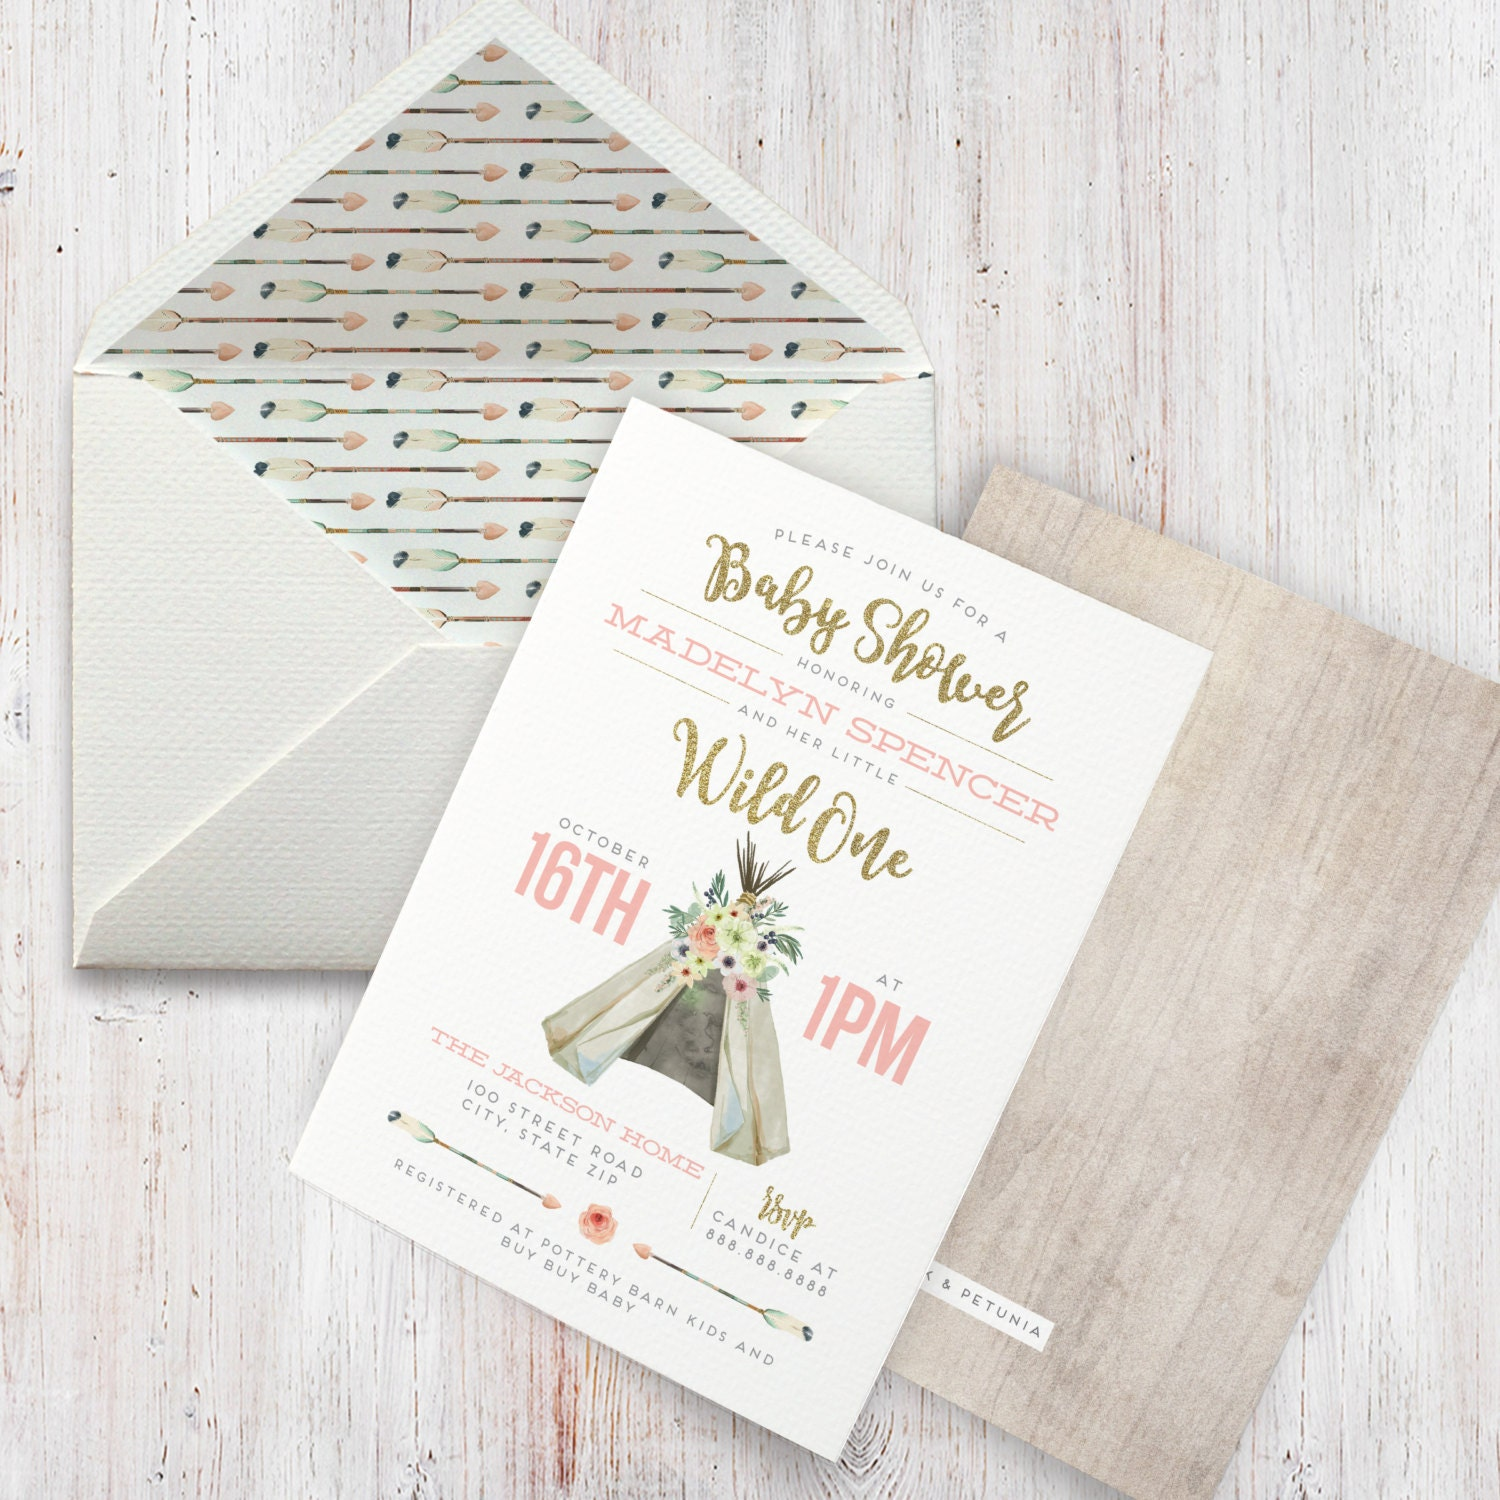 Teepee Rustic Boho Watercolor Baby Shower Invitation, Boho Chic Baby ...